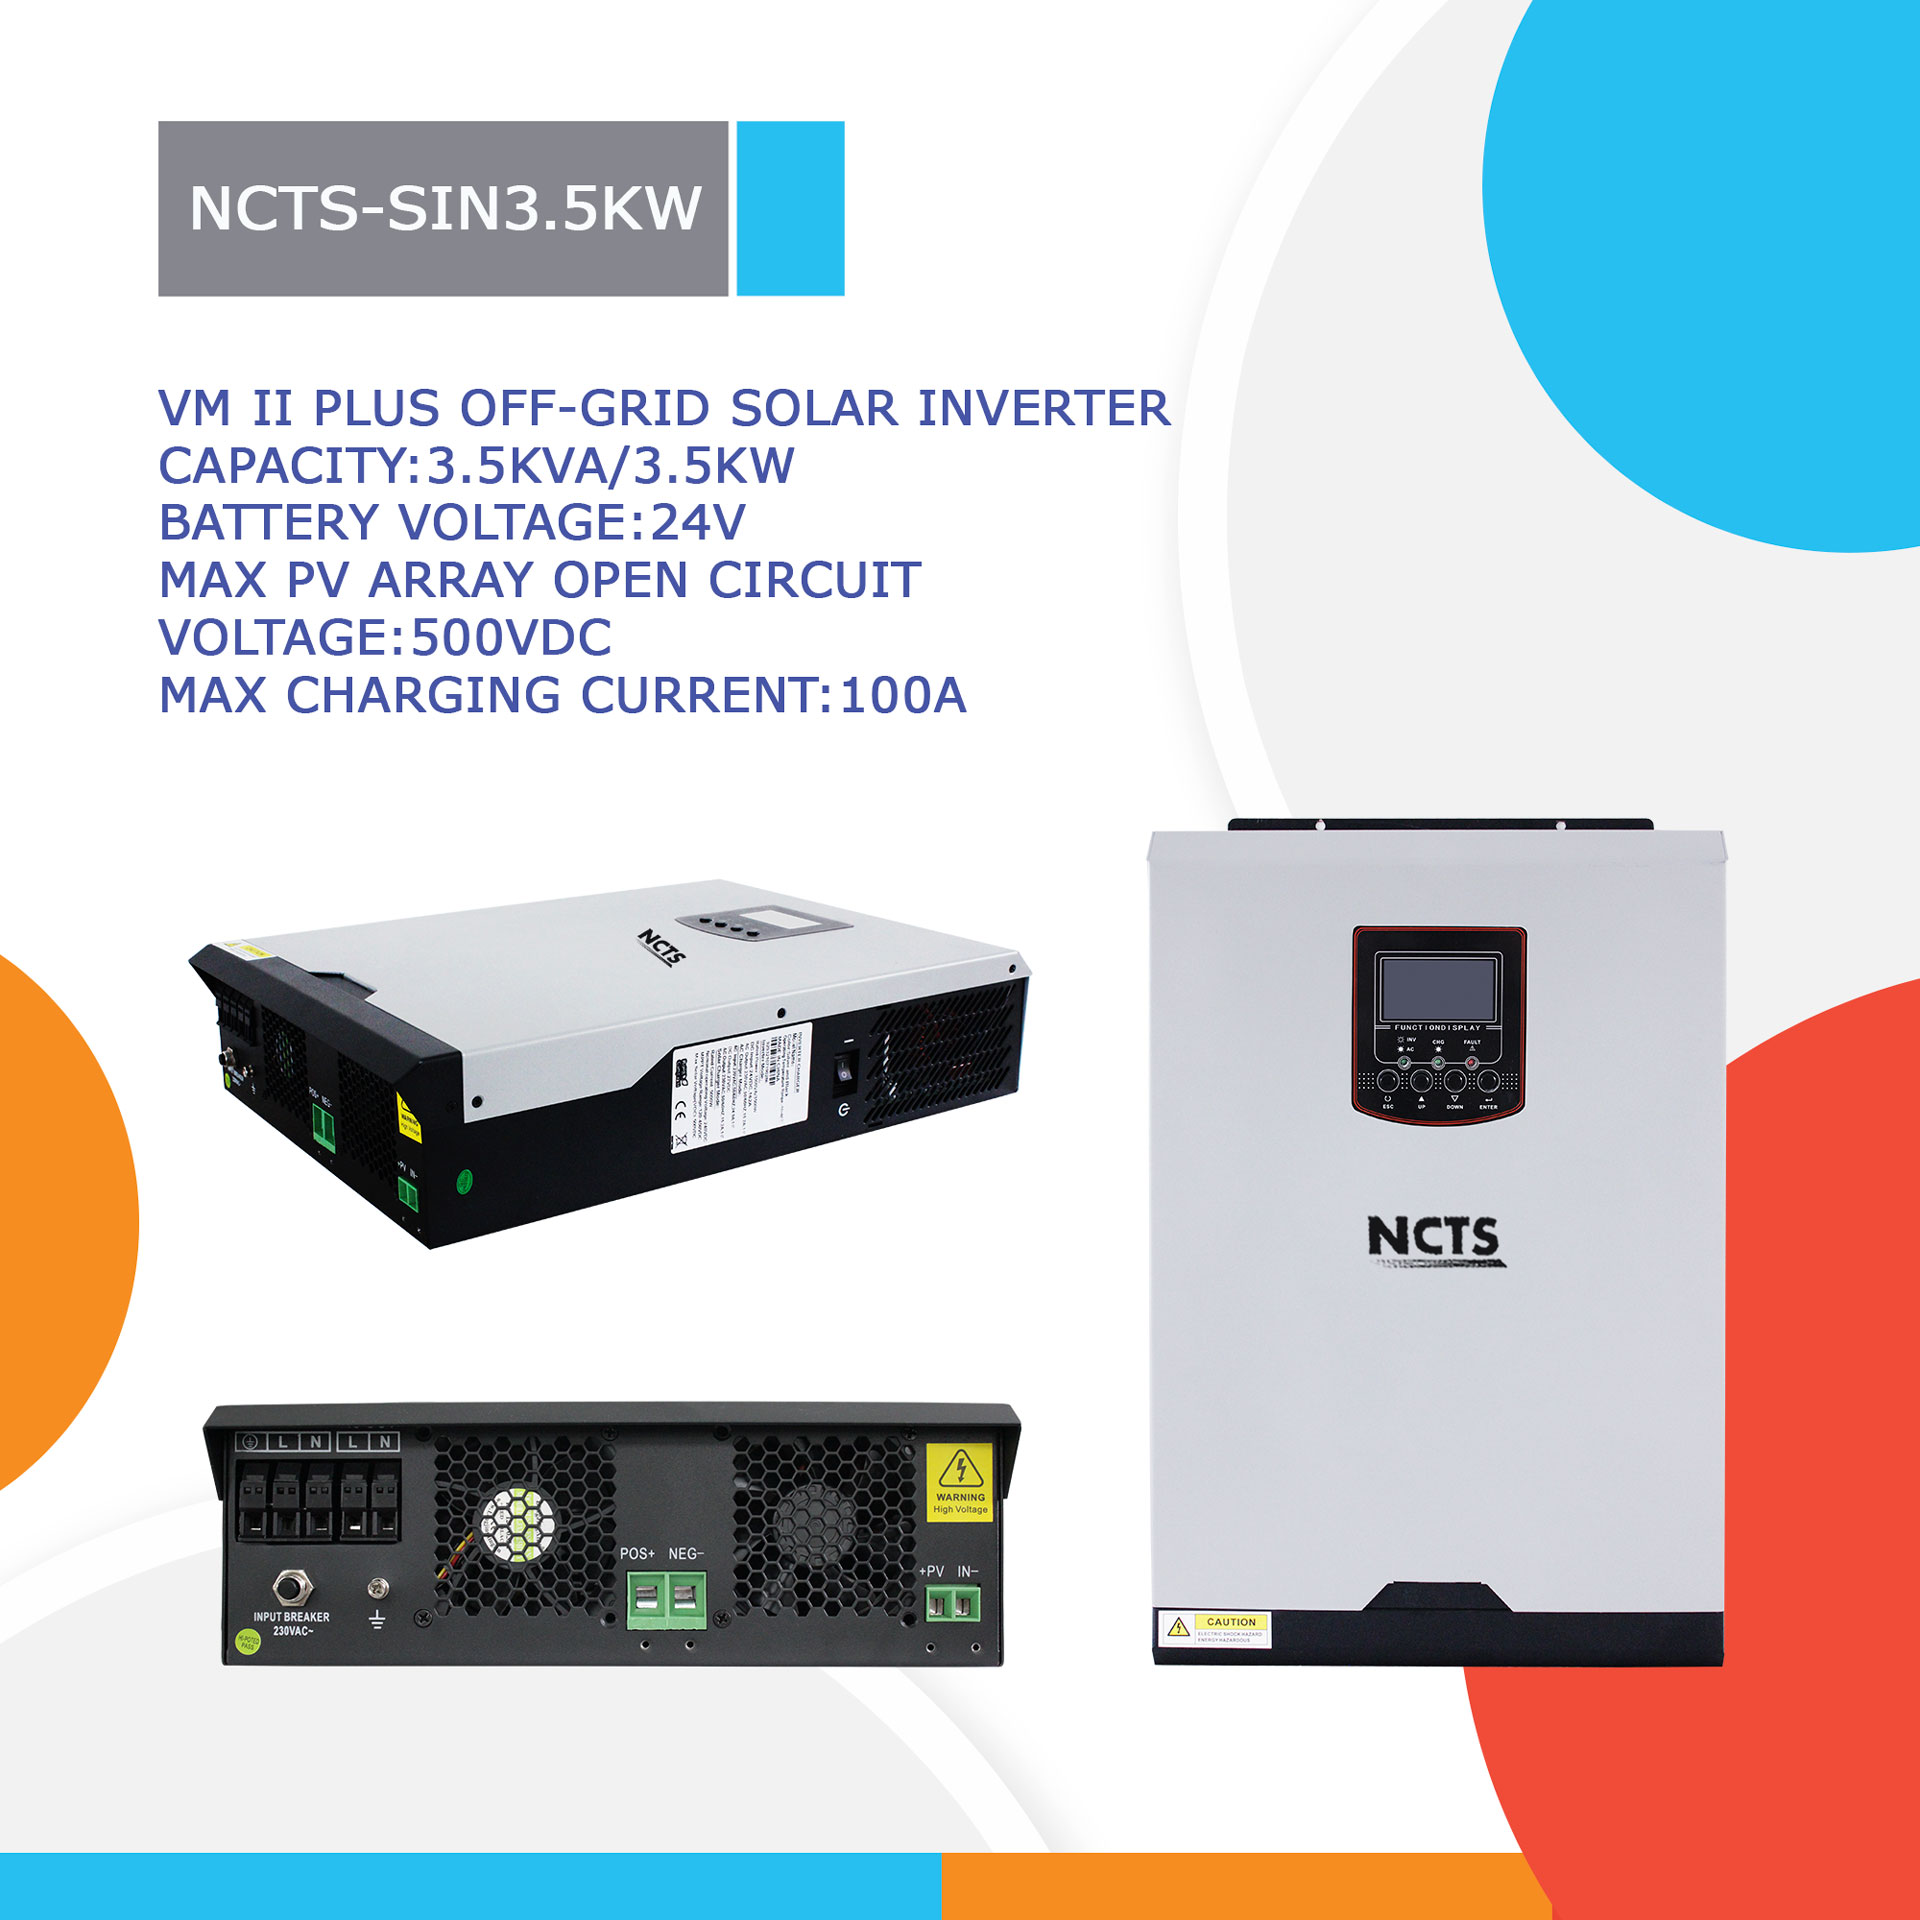 NCTS-SIN3.5KW